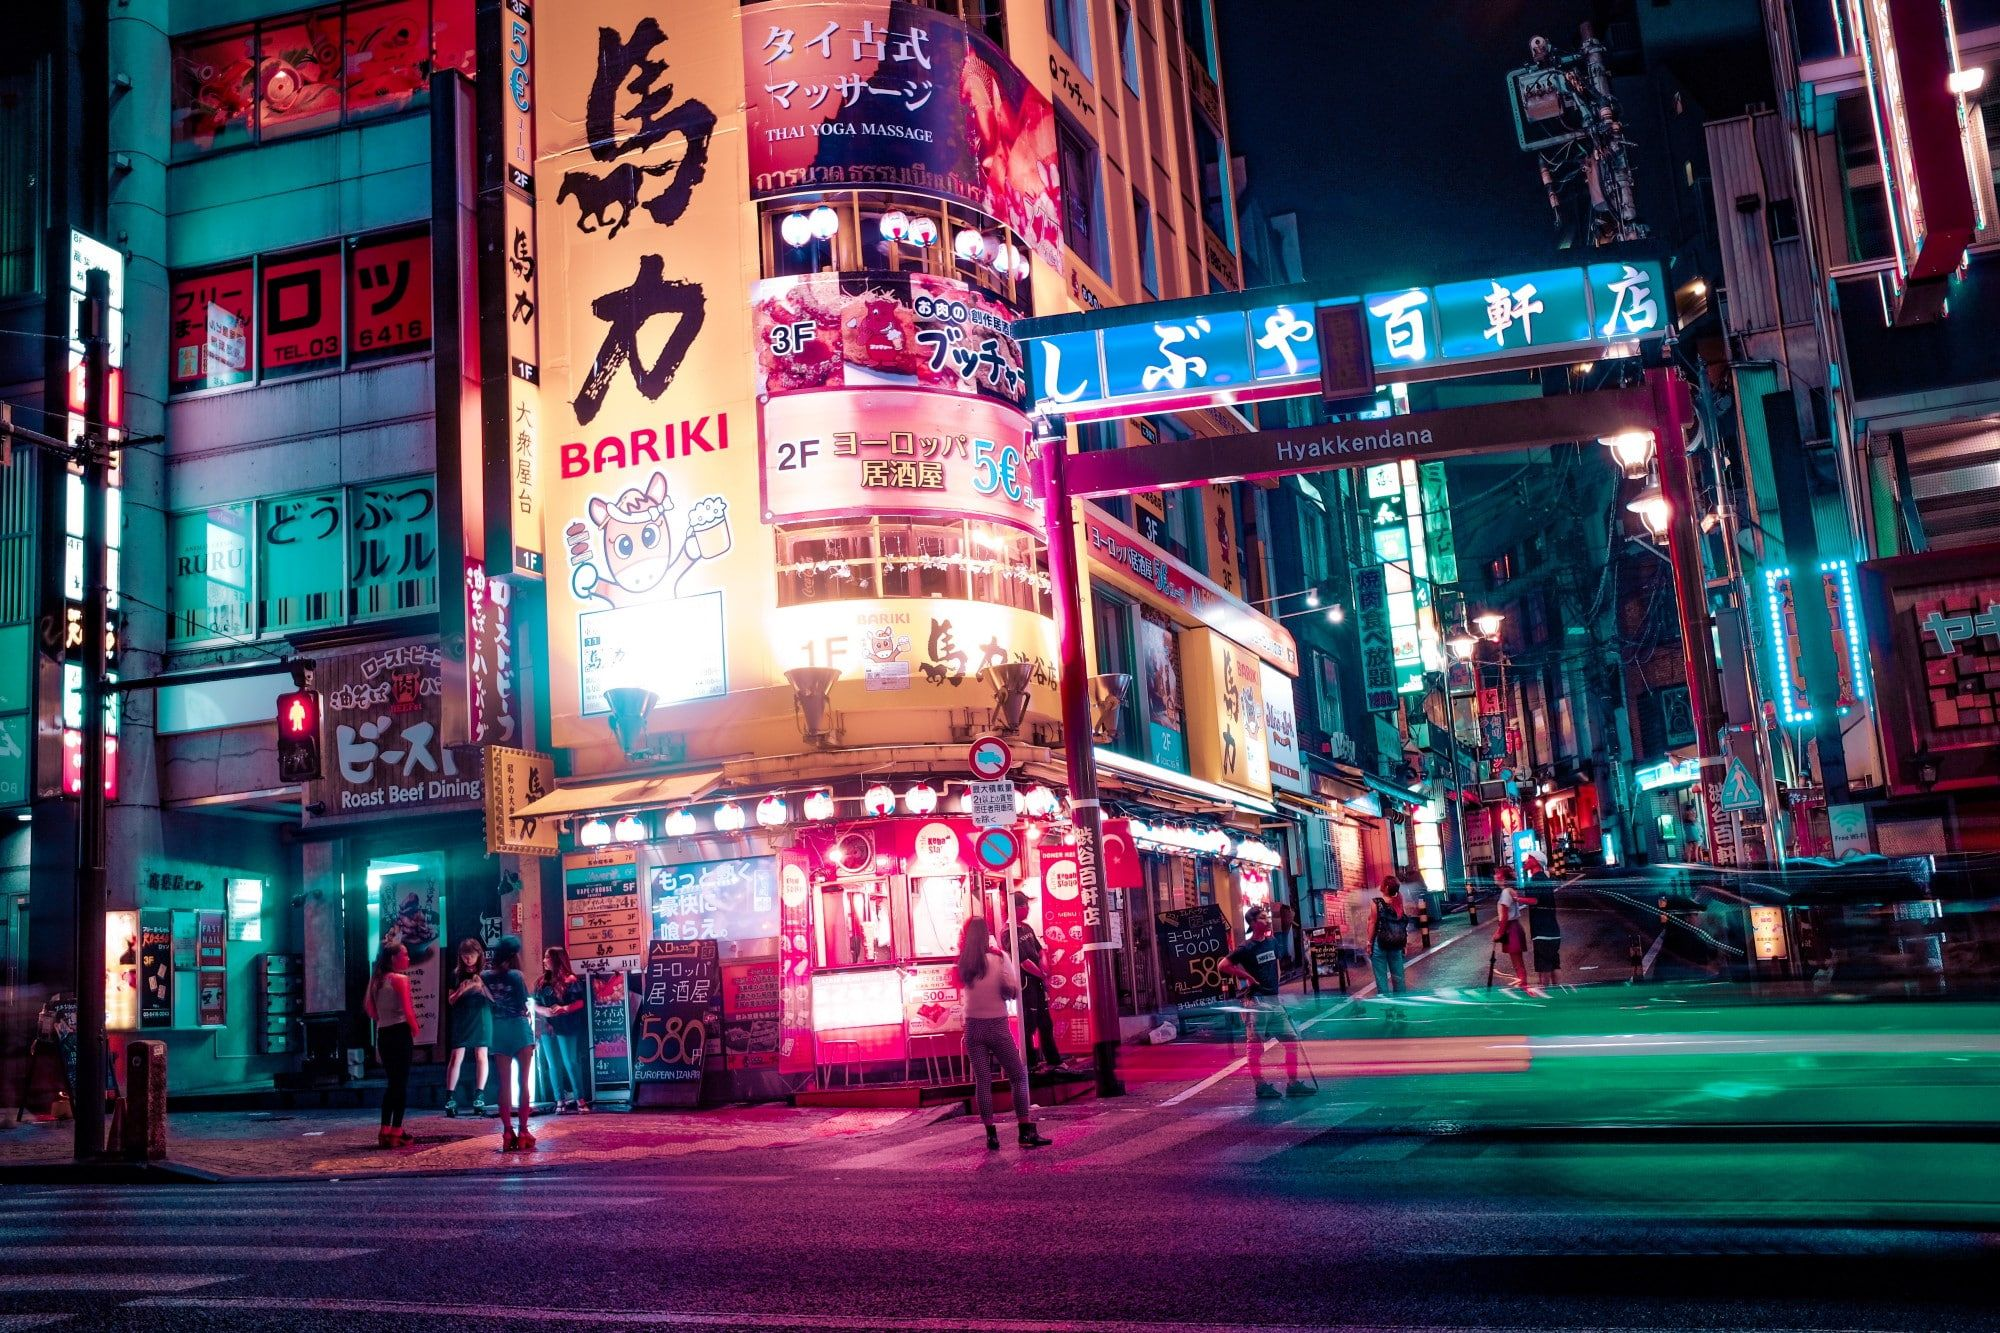 Japan Tokyo Night Urban Lights Neon Street 1080p Wallpaper Hdwallpaper Desktop Tokyo Japan Travel Tokyo Japan Travel Guide Japan Travel